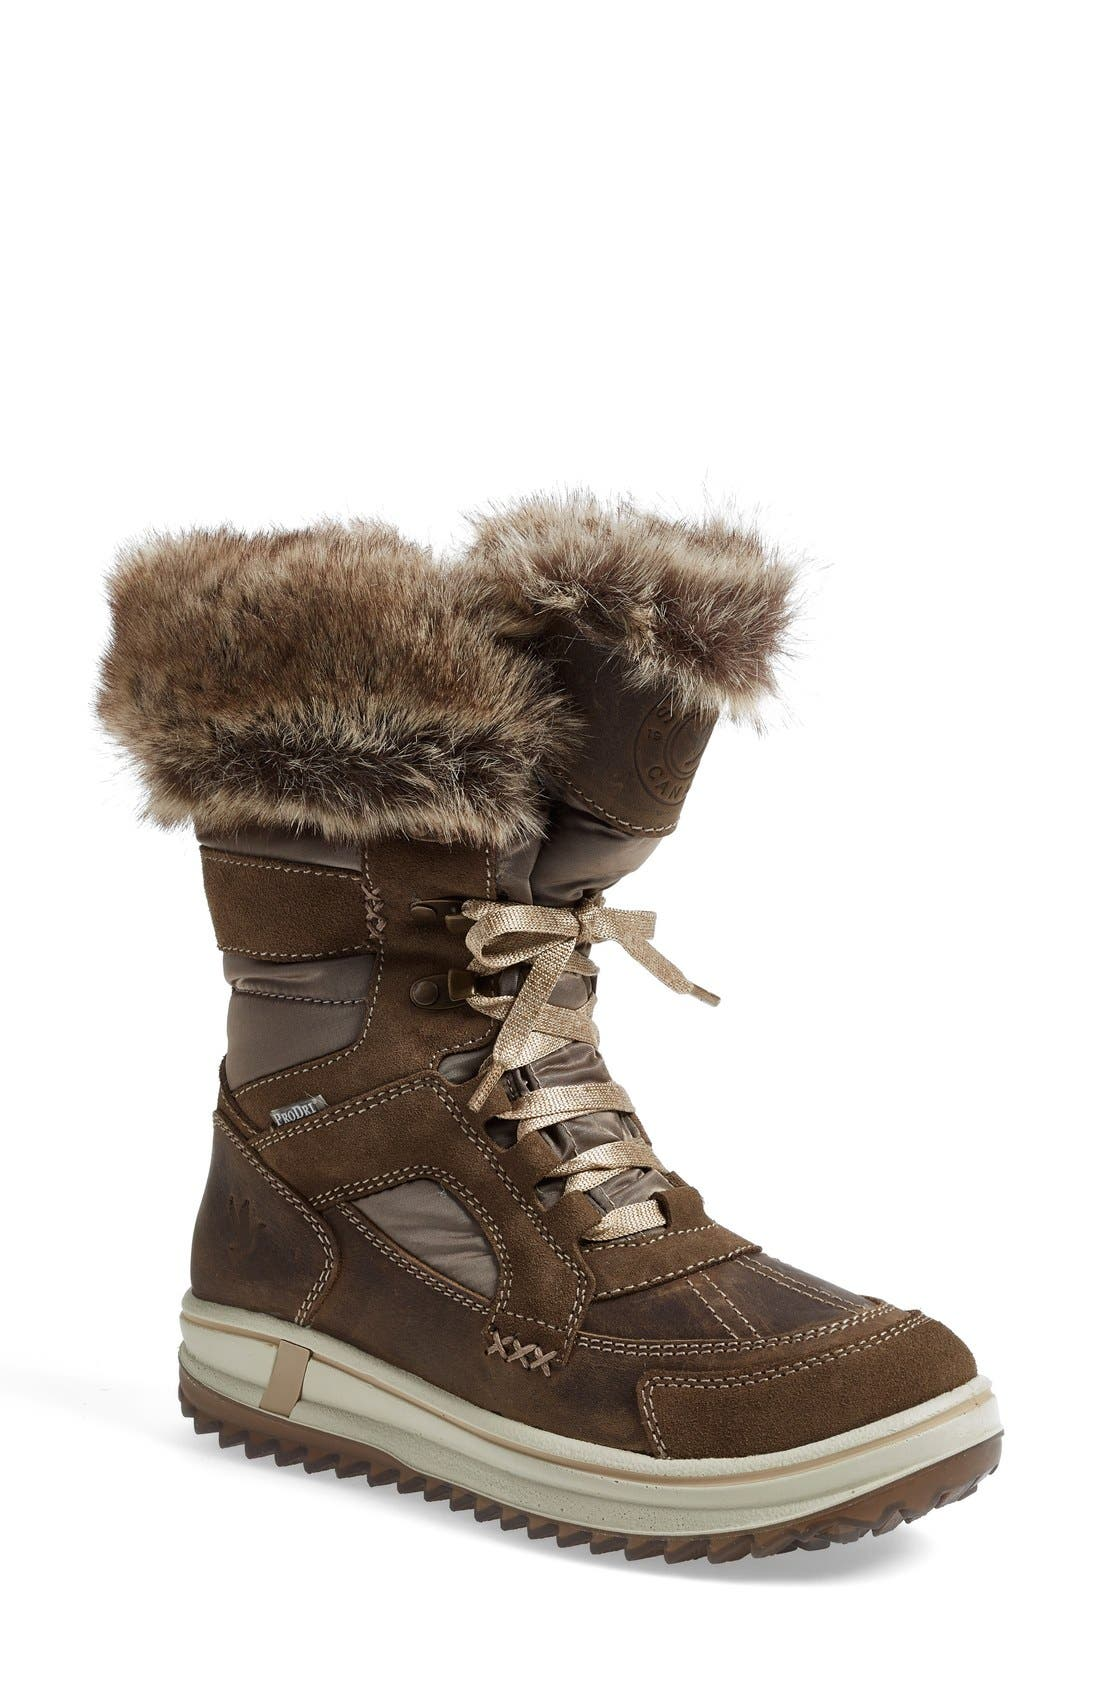 'Marta' Water Resistant Insulated Winter Boot,                         Main,                         color, 236